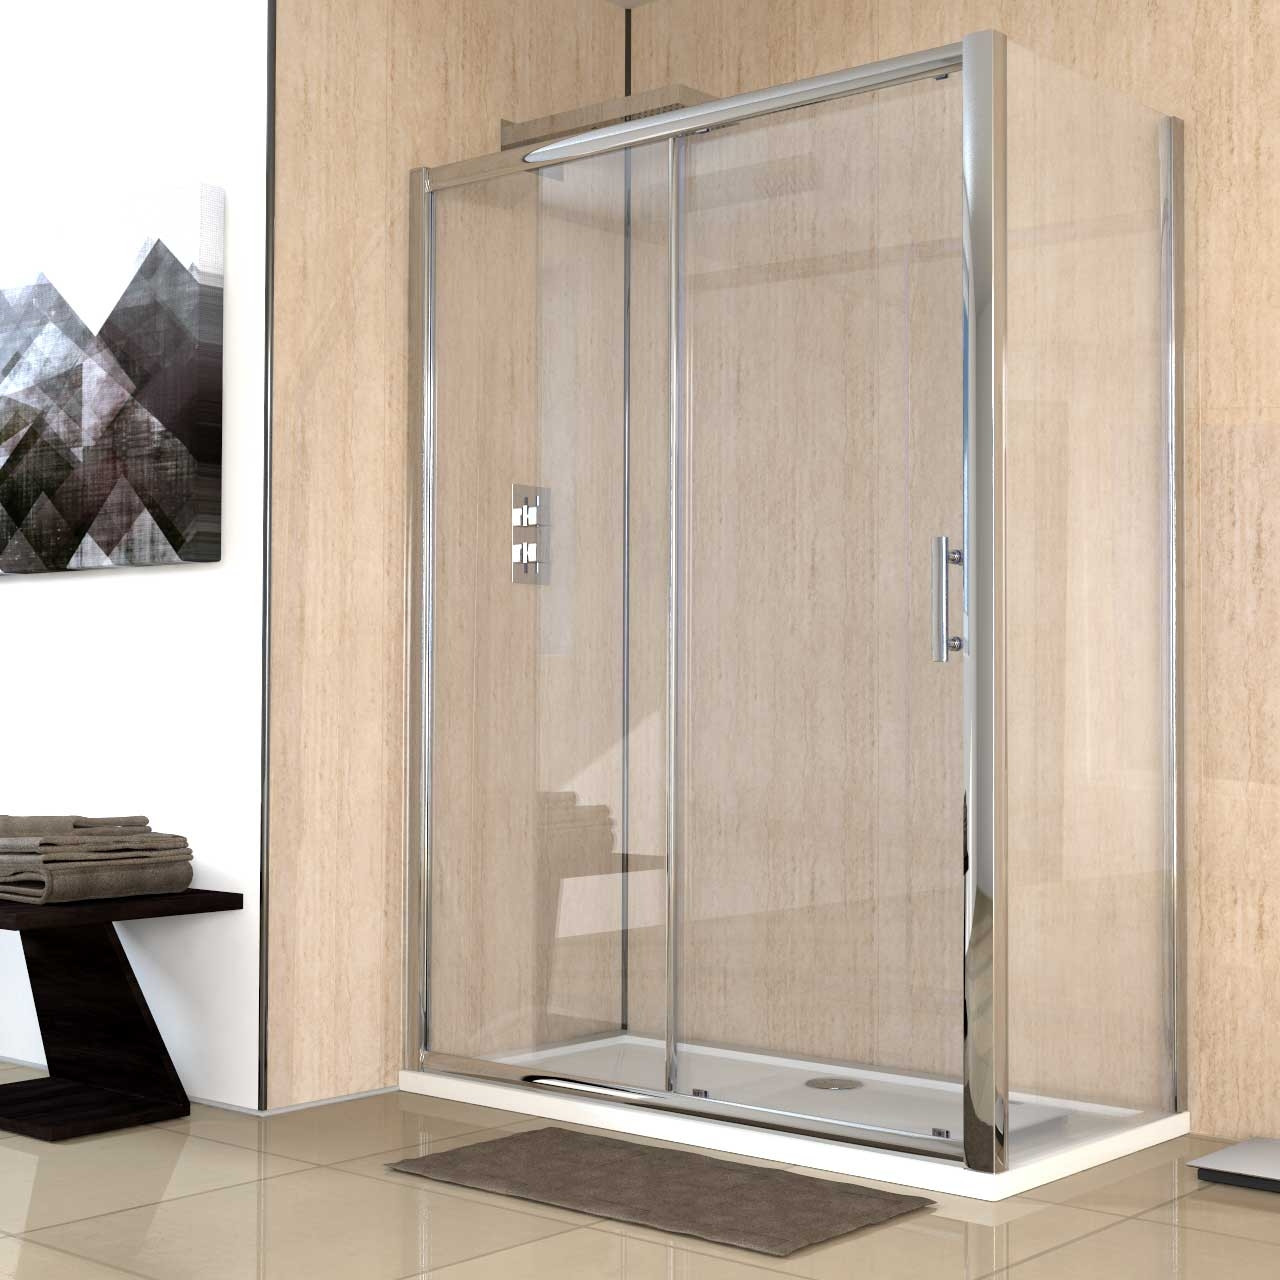 Series 6 1400mm x 700mm Sliding Door Shower Enclosure